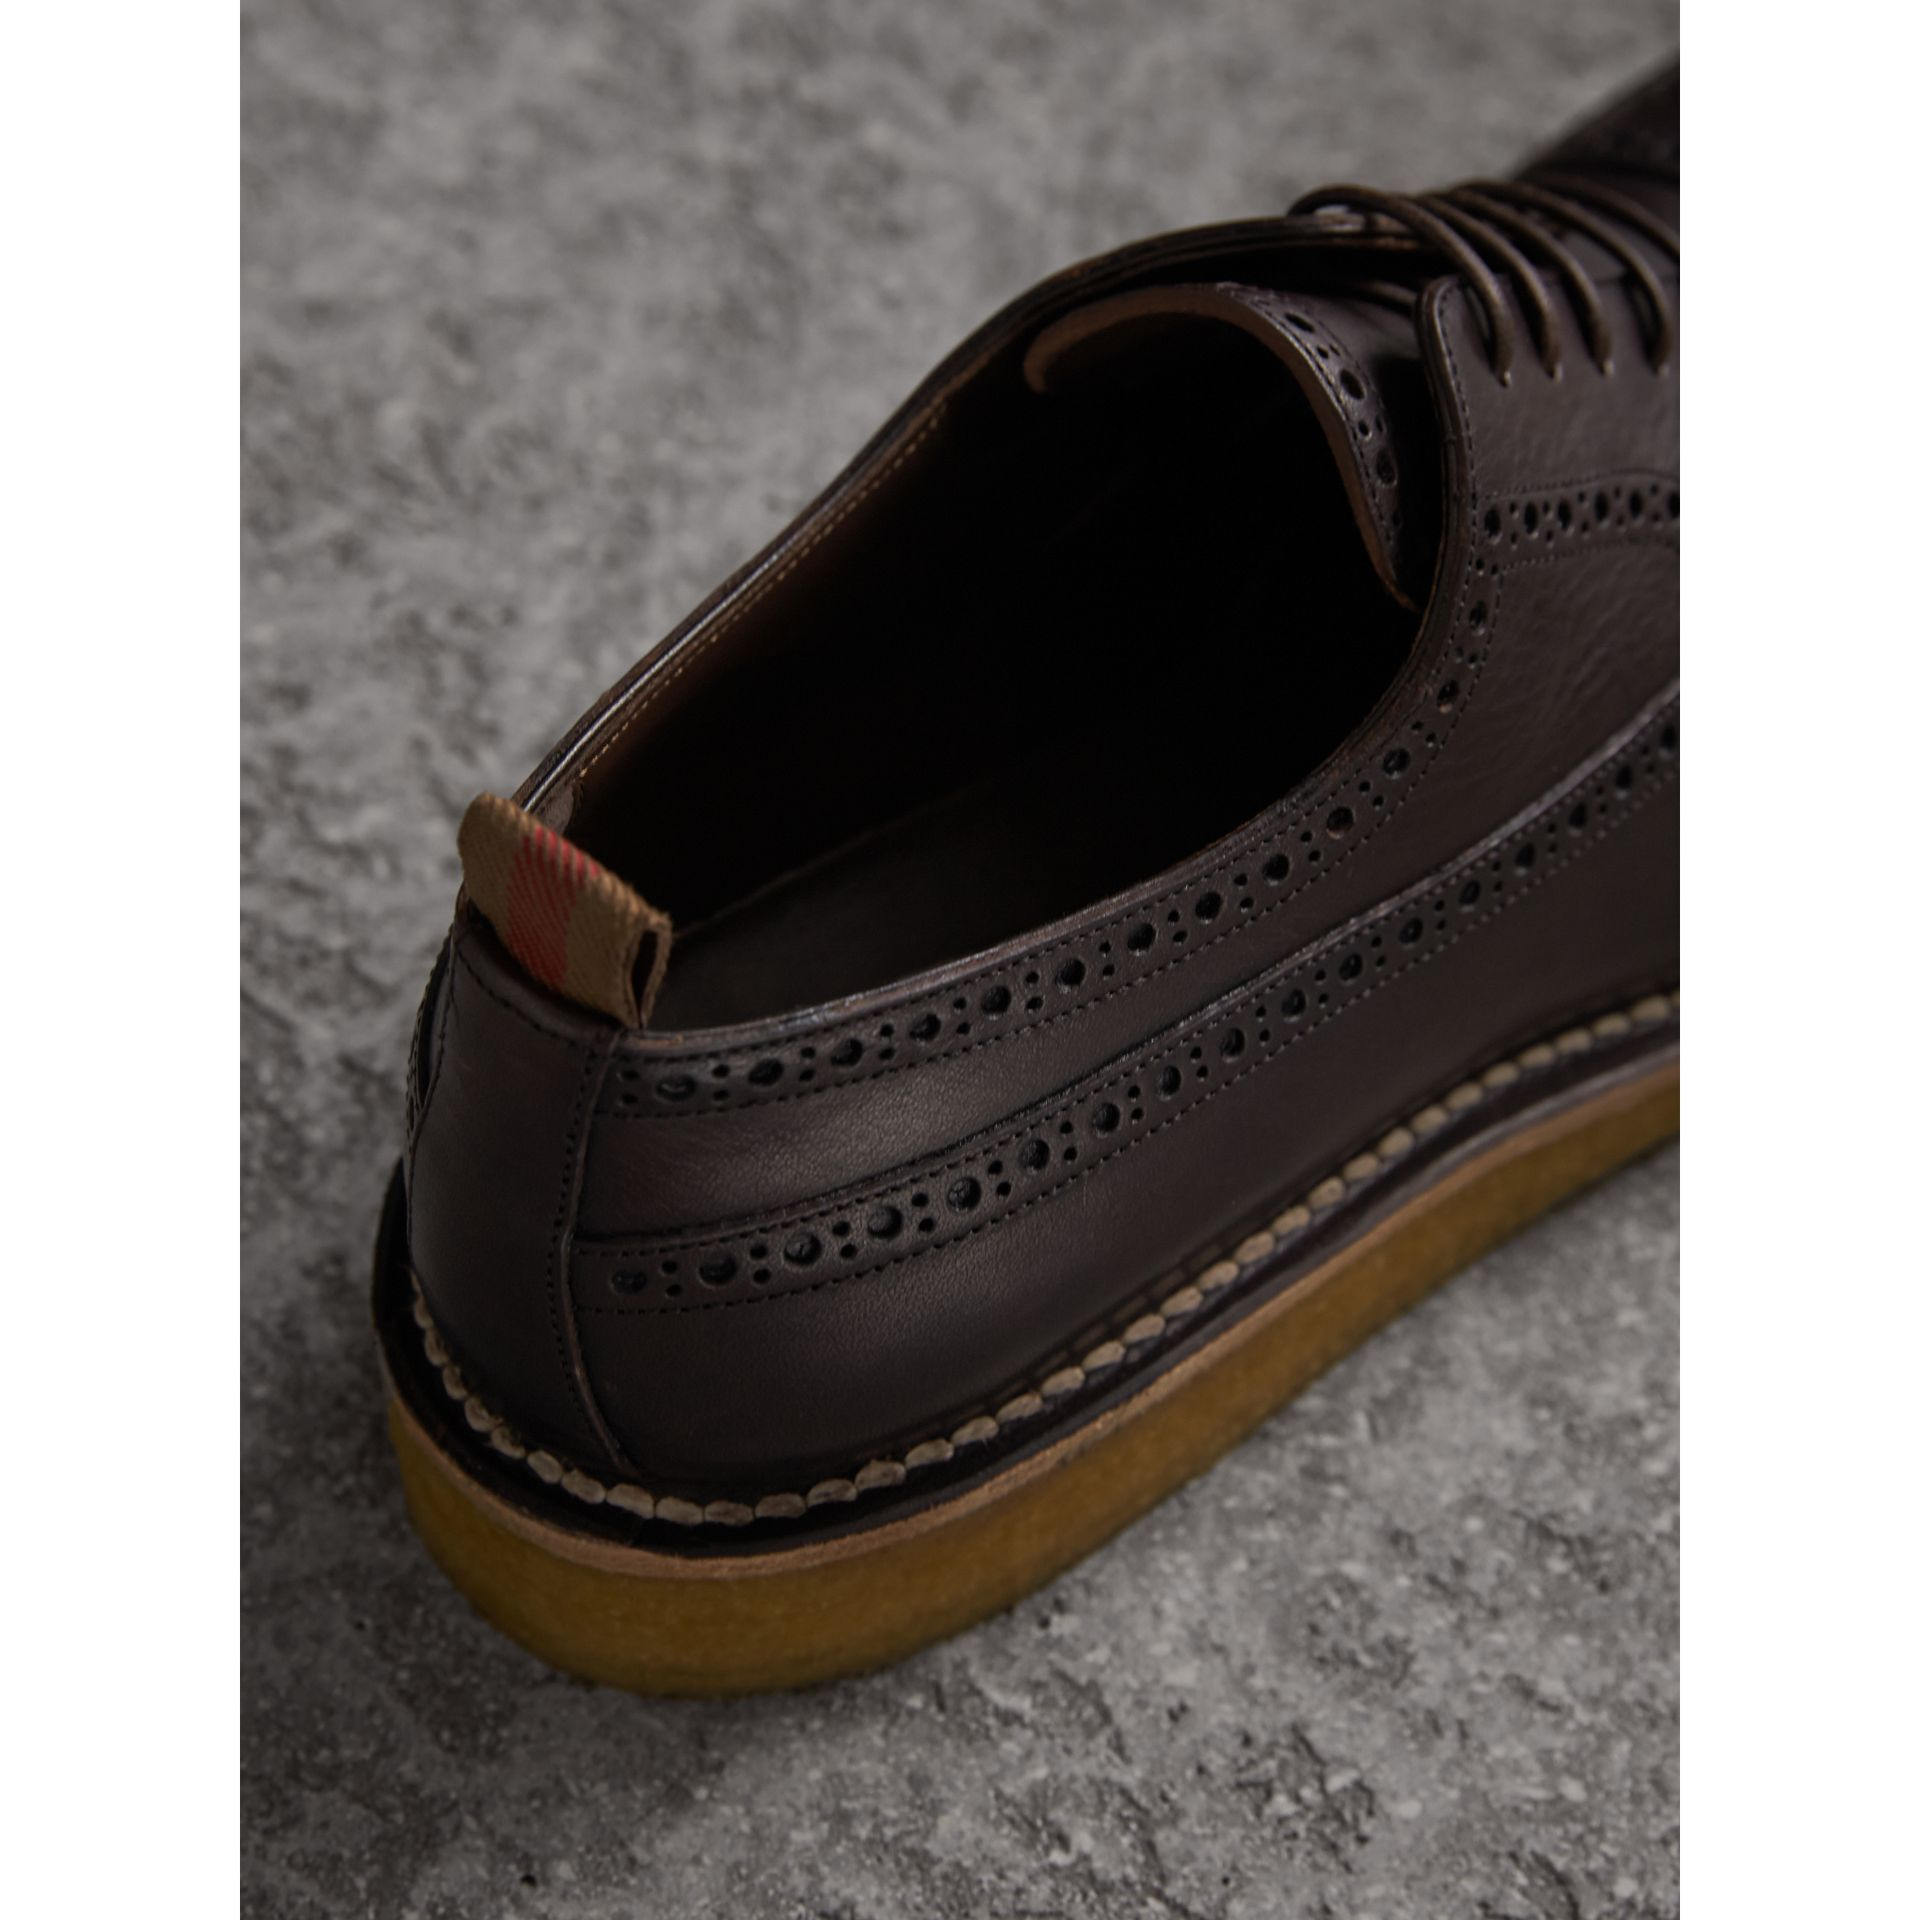 Raised Toe-cap Leather Brogues in Ebony - Men | Burberry - gallery image 2